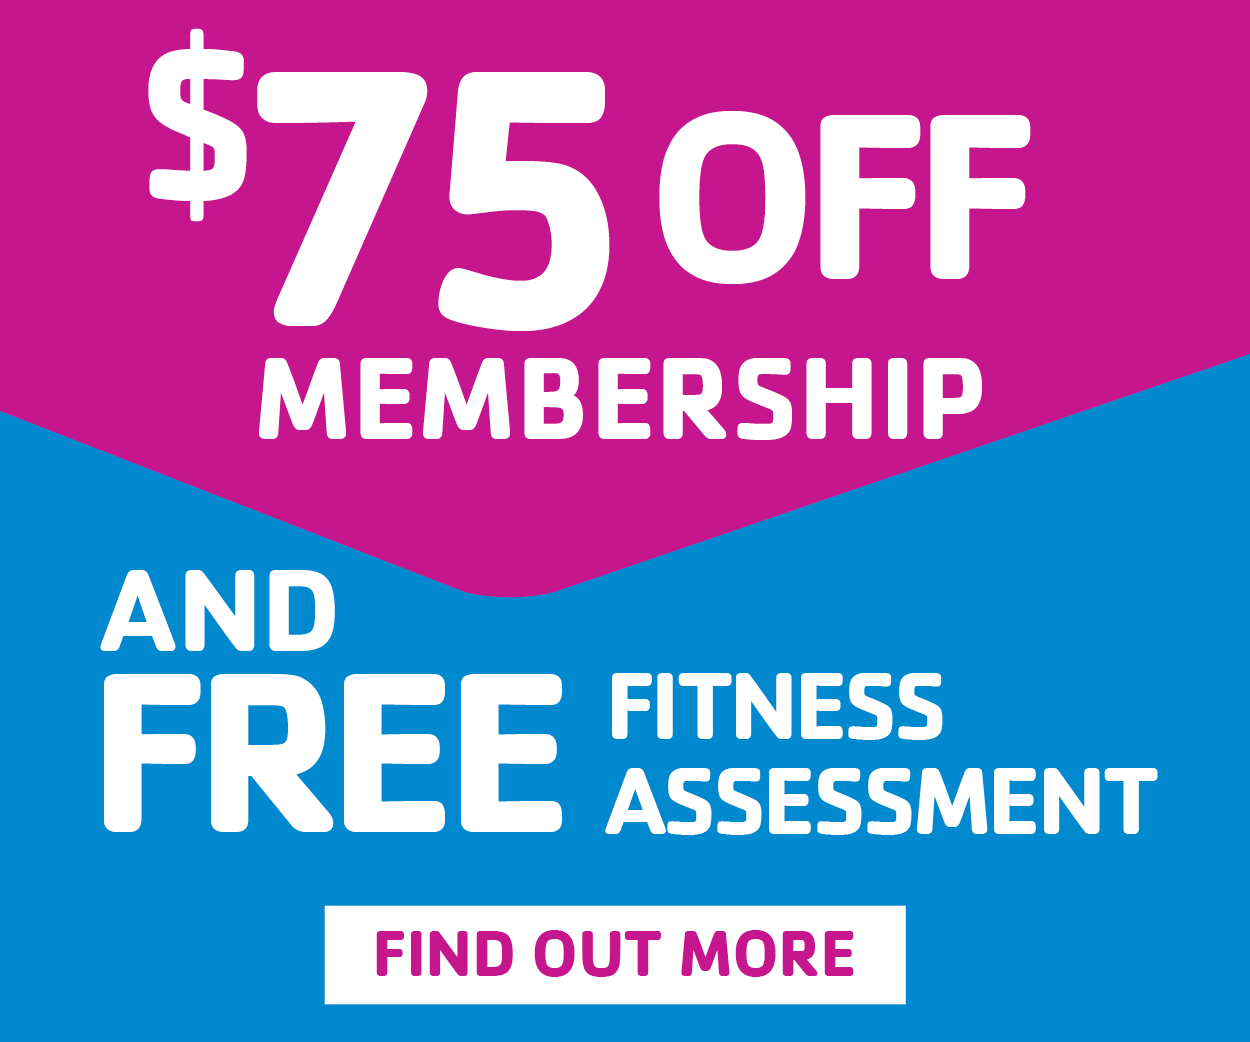 Valley of the Sun YMCA | $75 Off Membership | Join the Y | Free Fitness Assessment